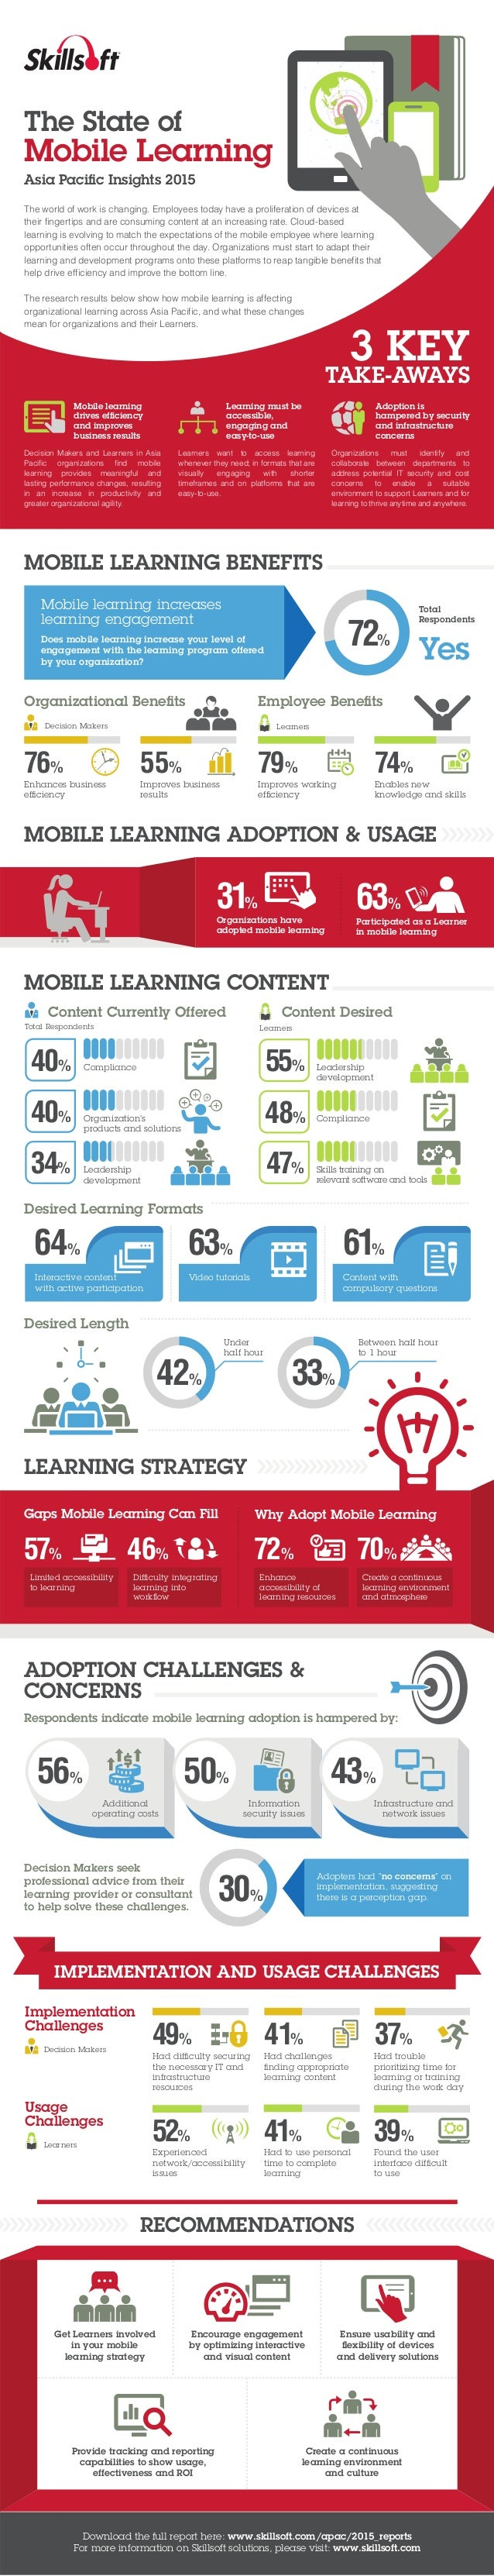 LEARNING STRATEGY Why Adopt Mobile Learning 72% Enhance accessibility of learning resources 70% Create a continuous learni...